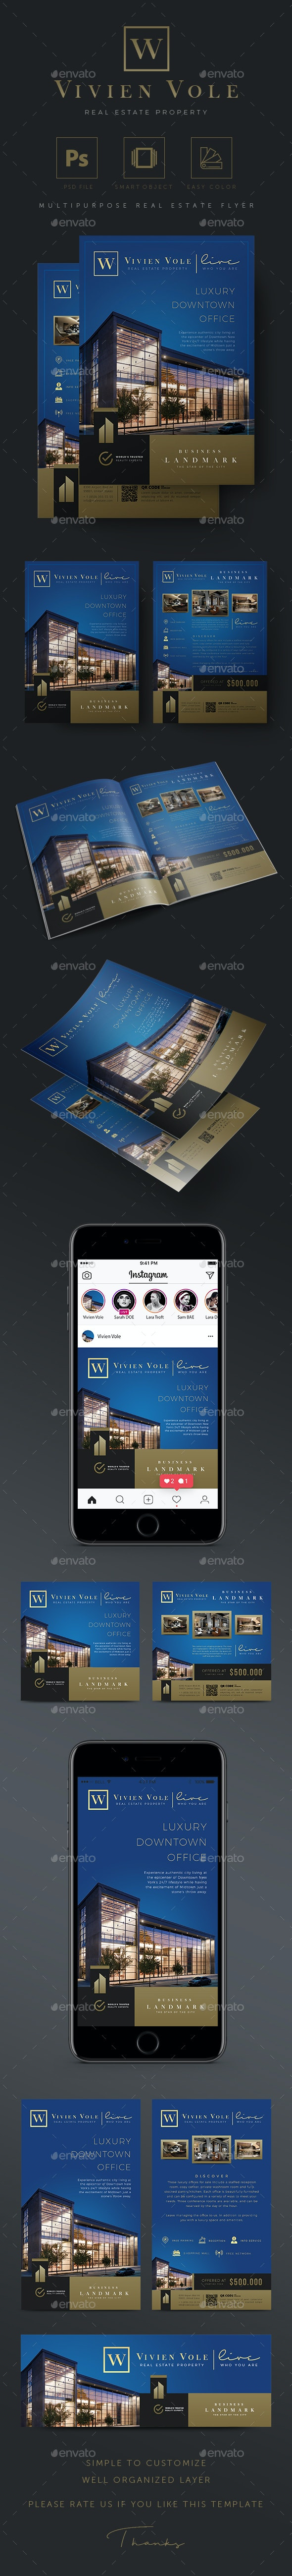 Business Landmark - Creative Real Estate Flyer - Commerce Flyers